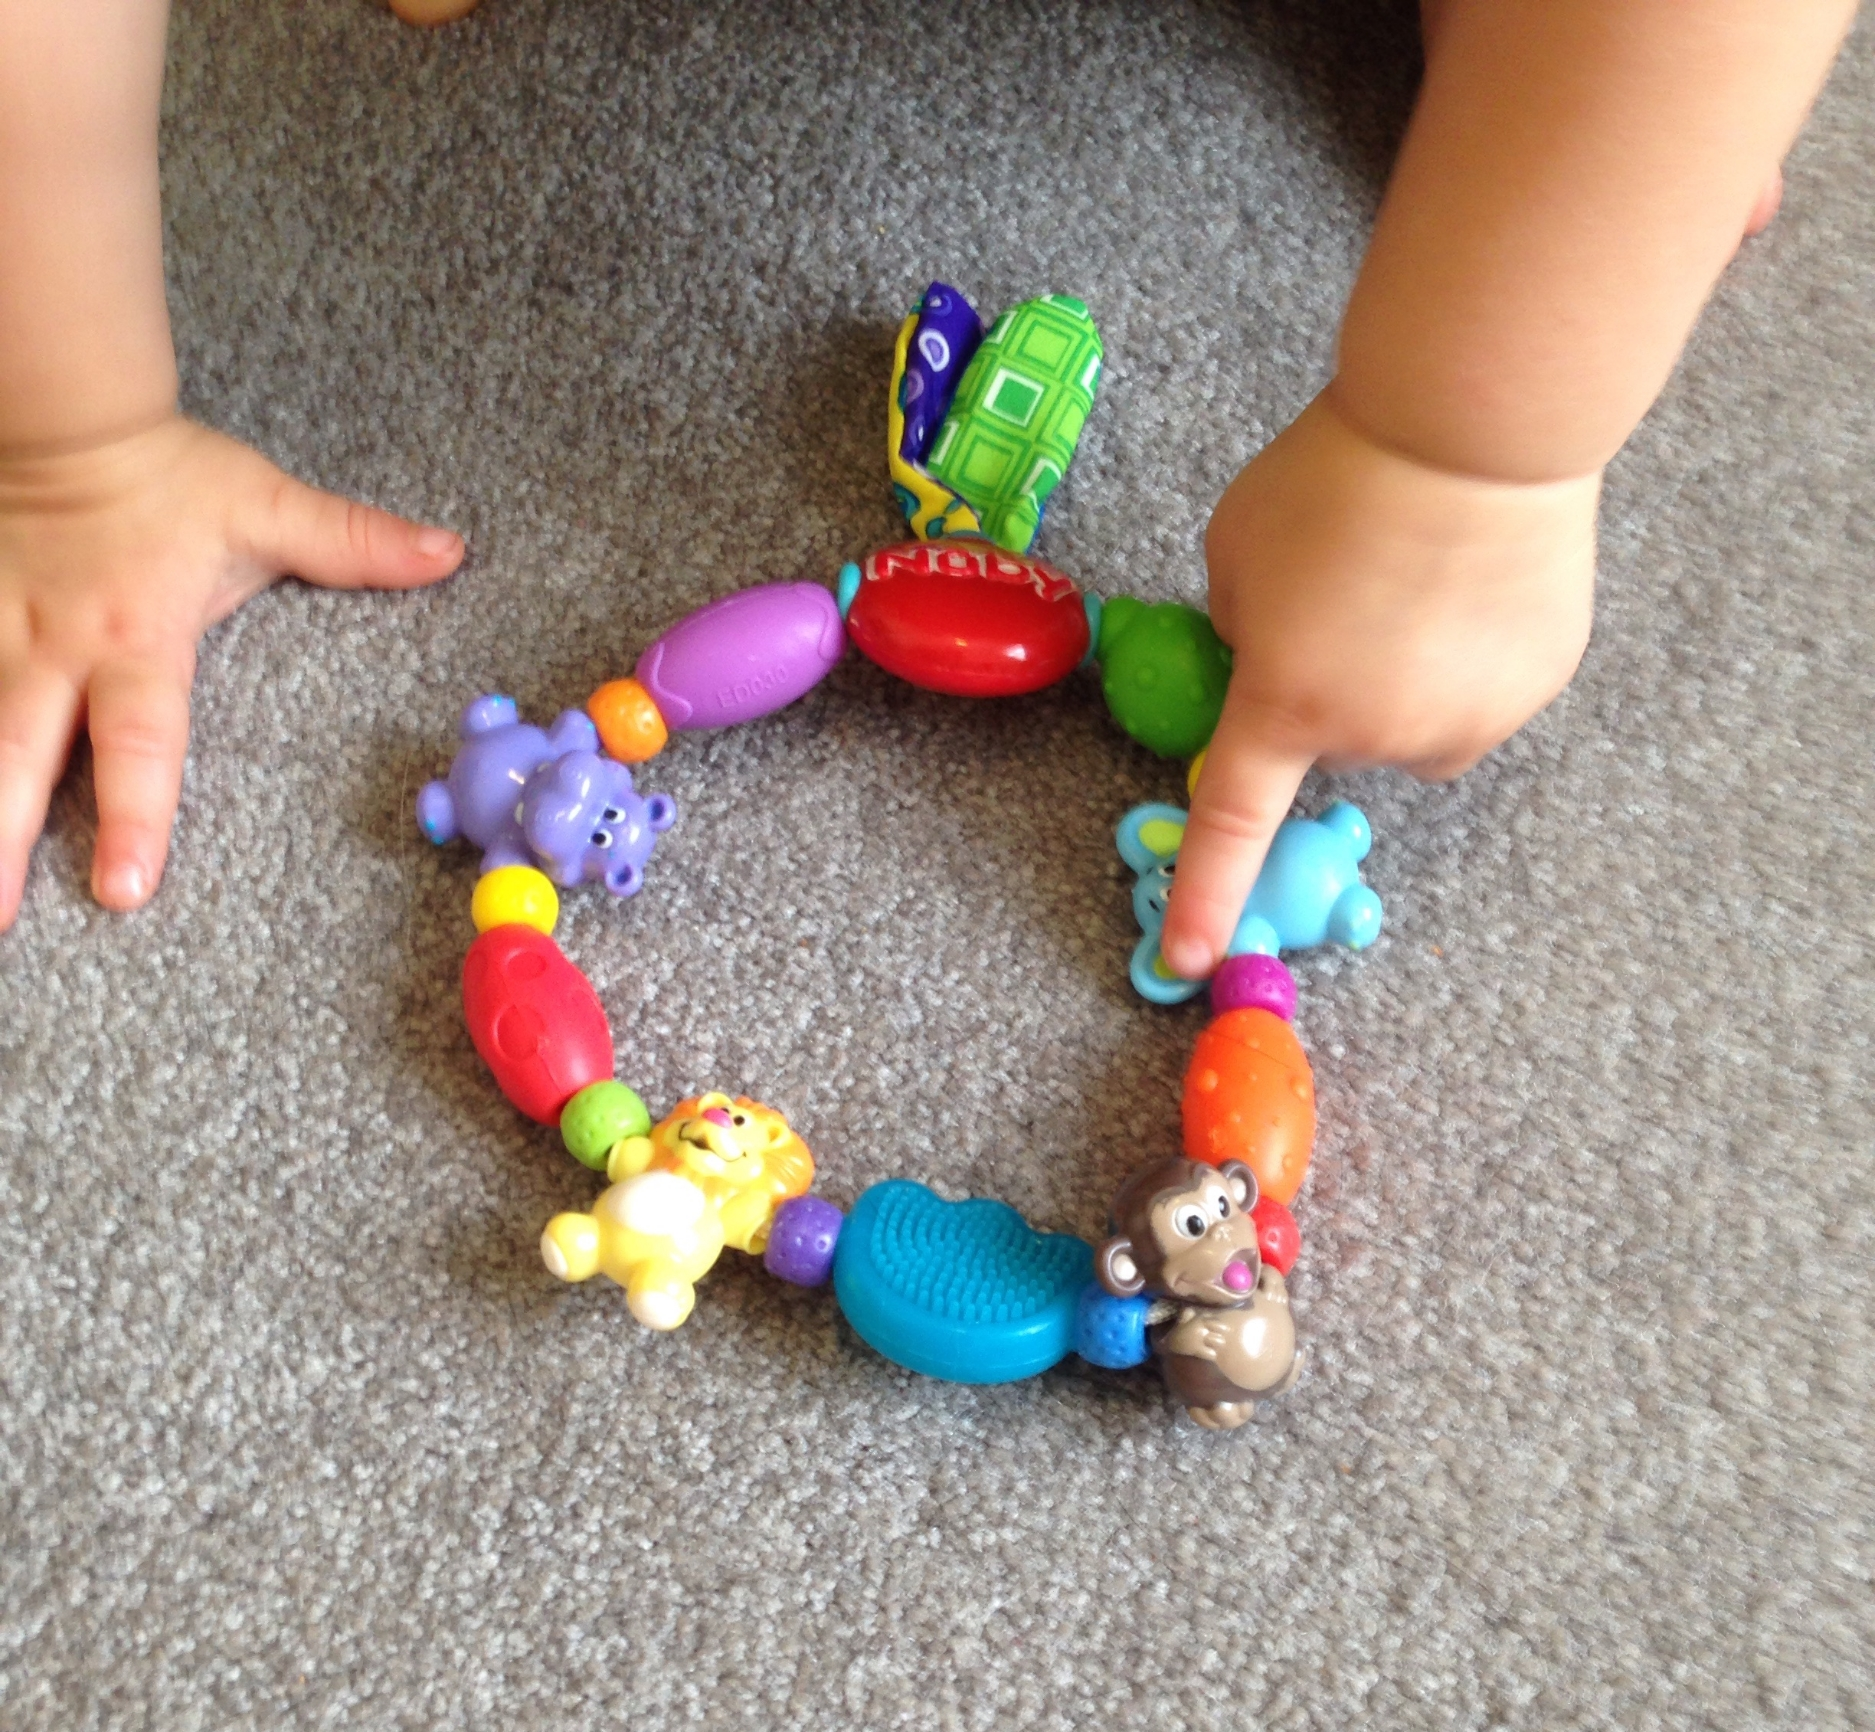 Pointing out the fun shapes on this Nuby teether